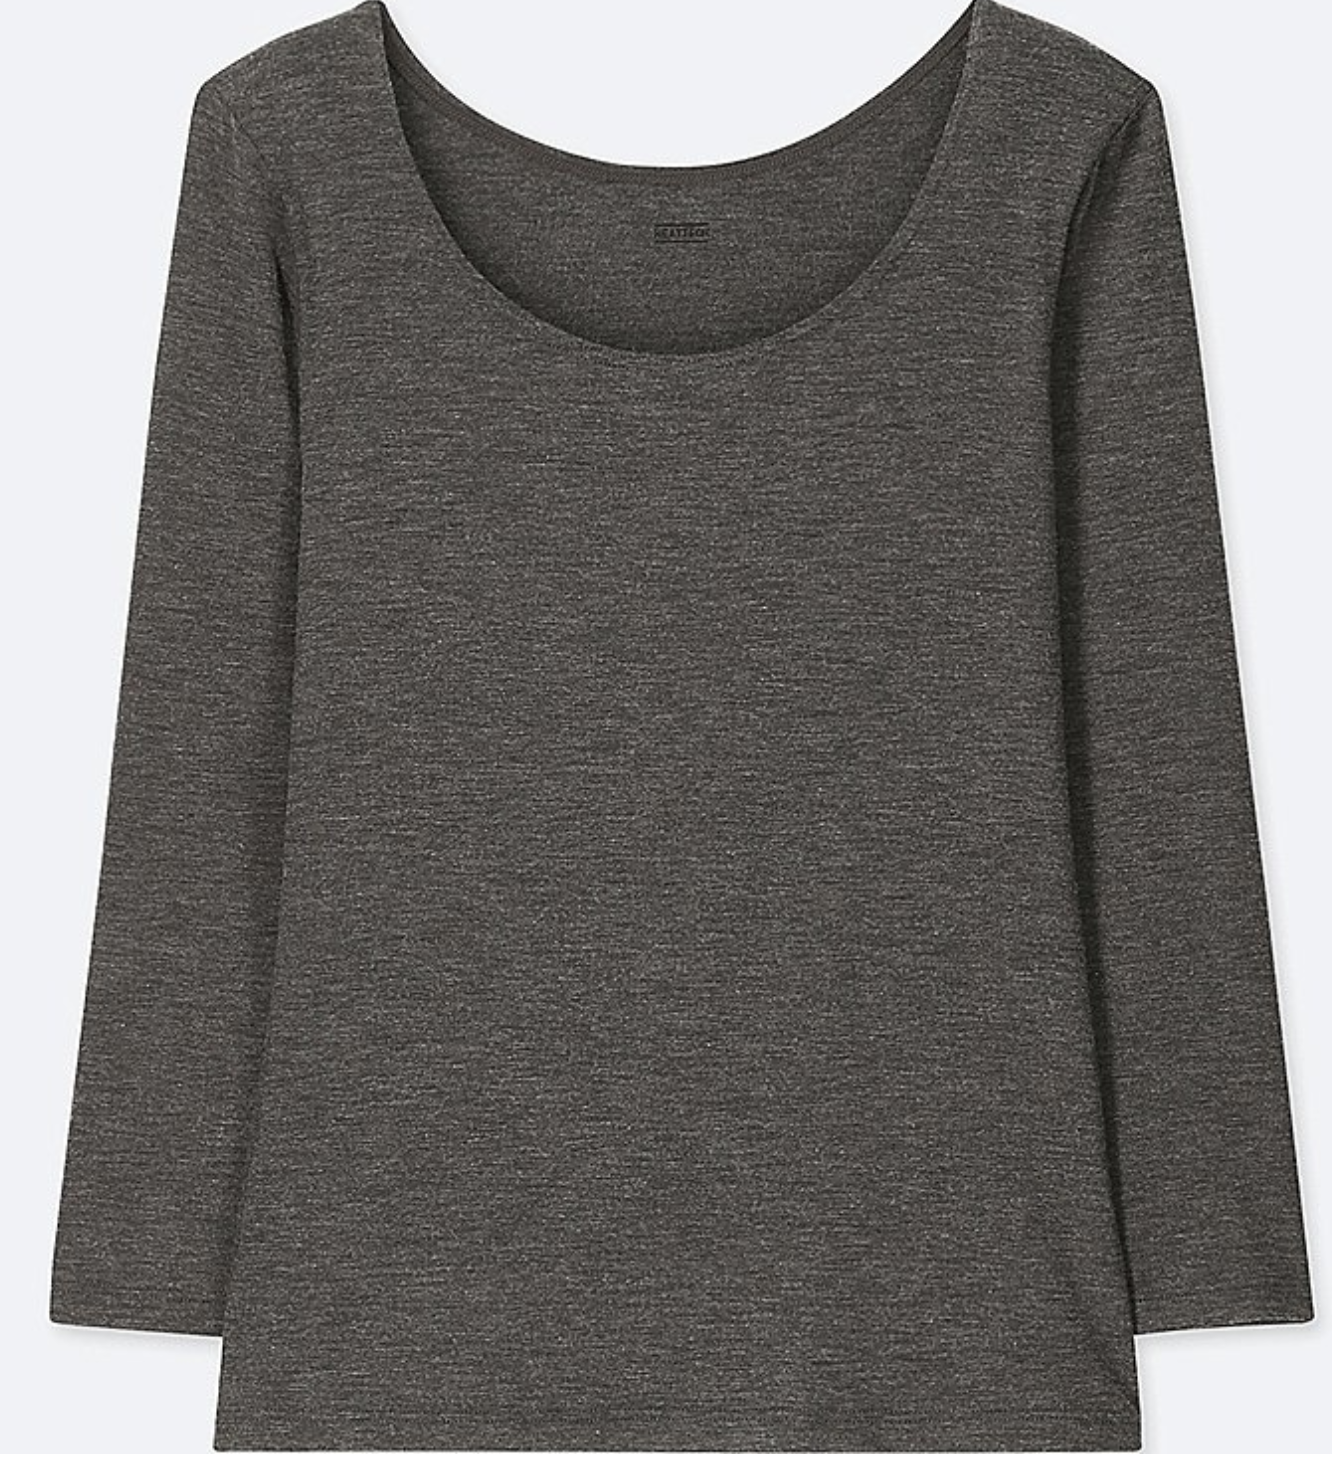 Uniqlo Heat-tech Top